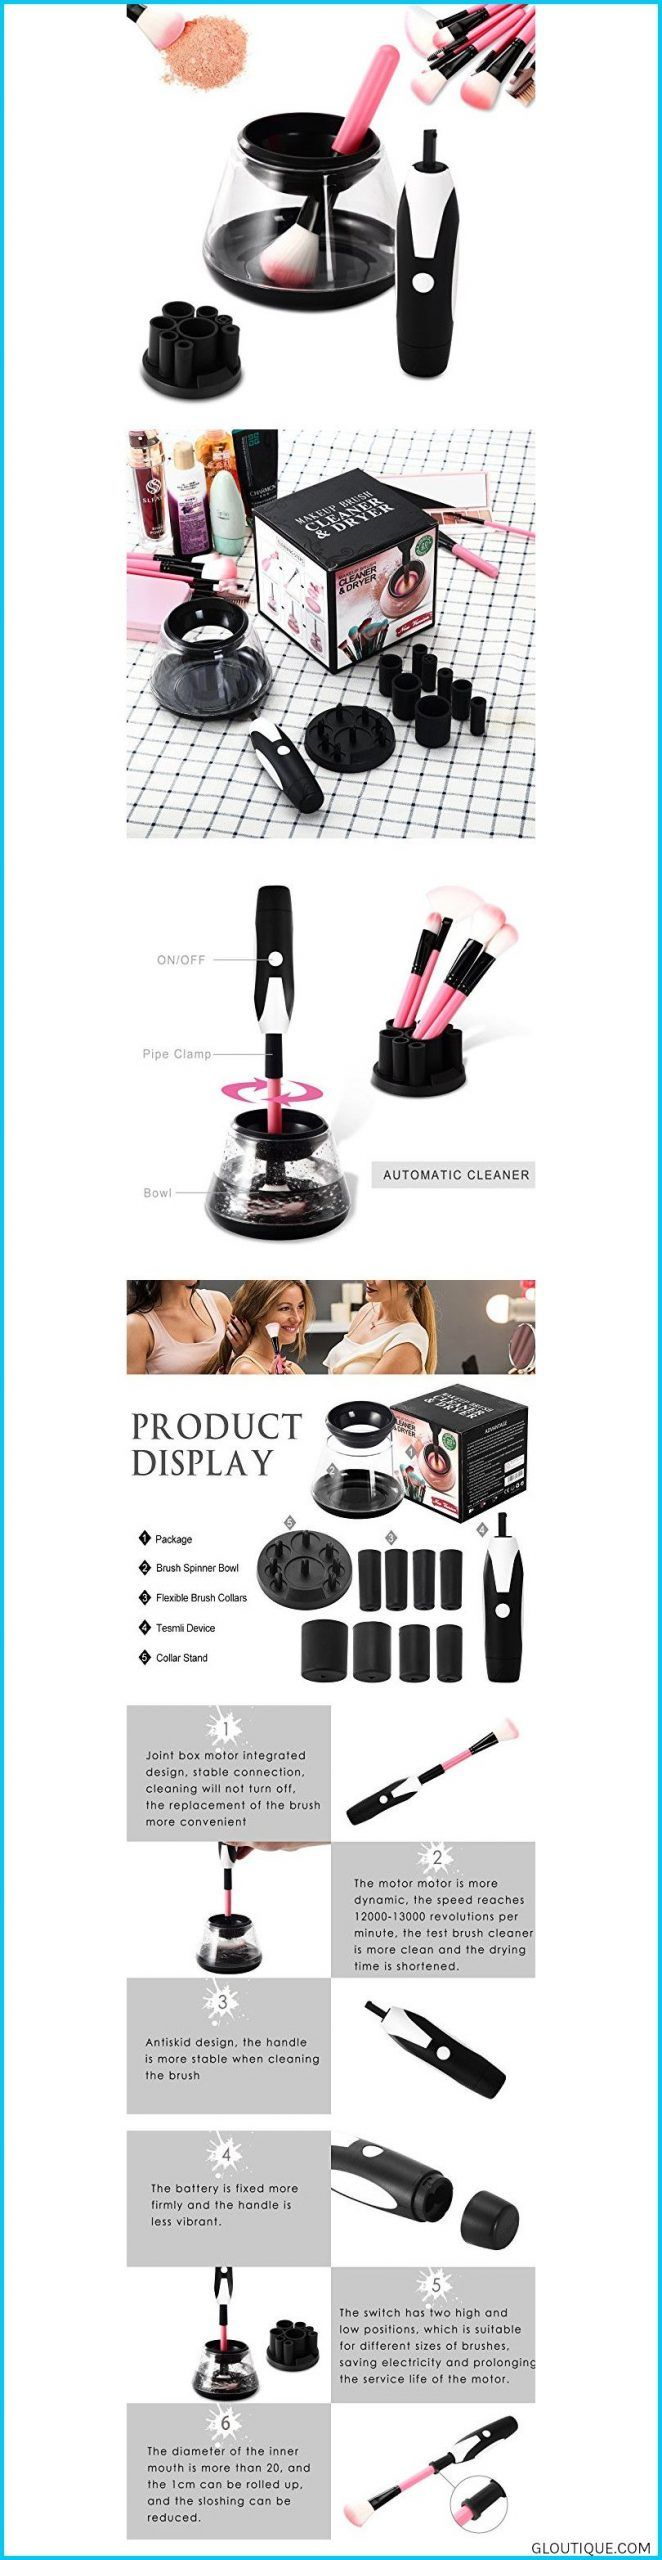 Makeup Brush Cleaner and Dryer Machine Upgraded Design